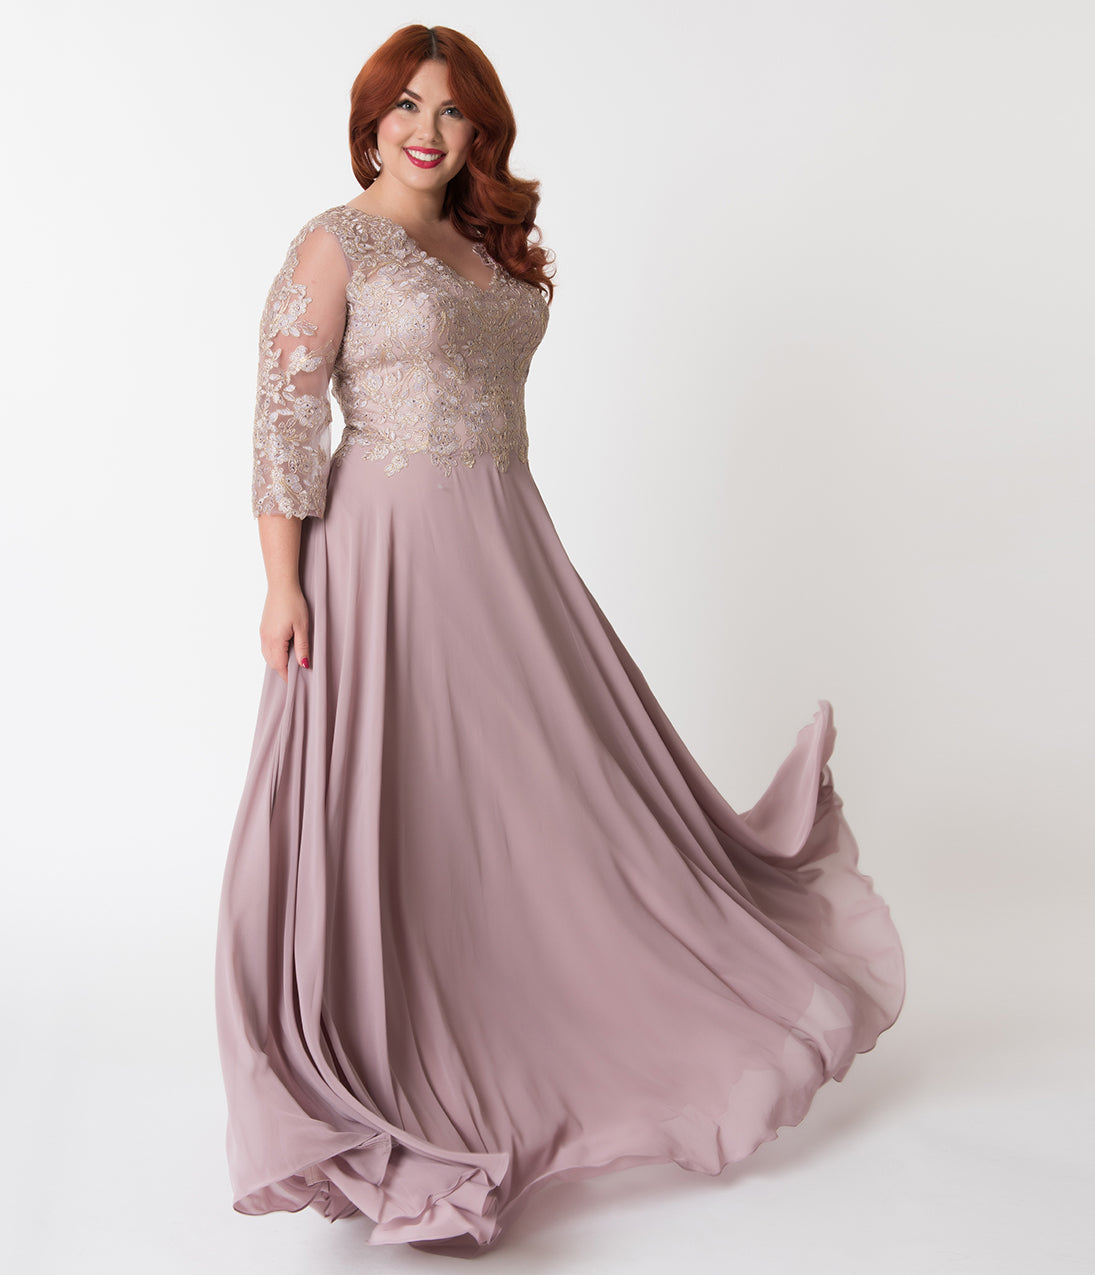 1940s Evening, Prom, Party, Cocktail Dresses & Ball Gowns Plus Size Mocha  Gold Embellished Appliqué Sleeved Chiffon Gown $168.00 AT vintagedancer.com